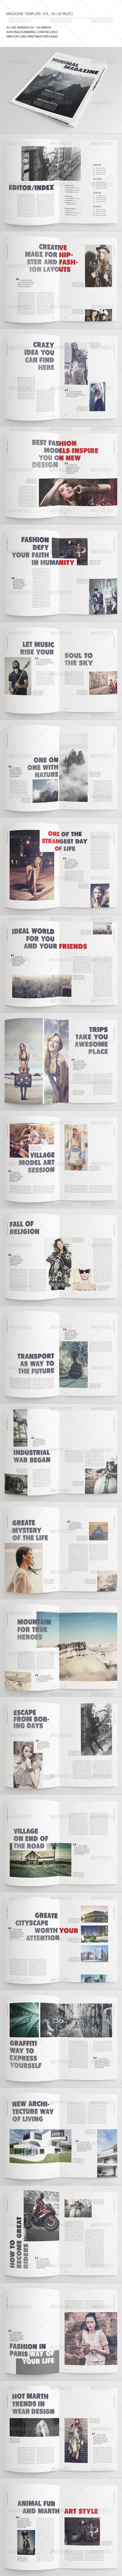 50 Pages Minimal Magazine Vol28 - Magazines Print Templates